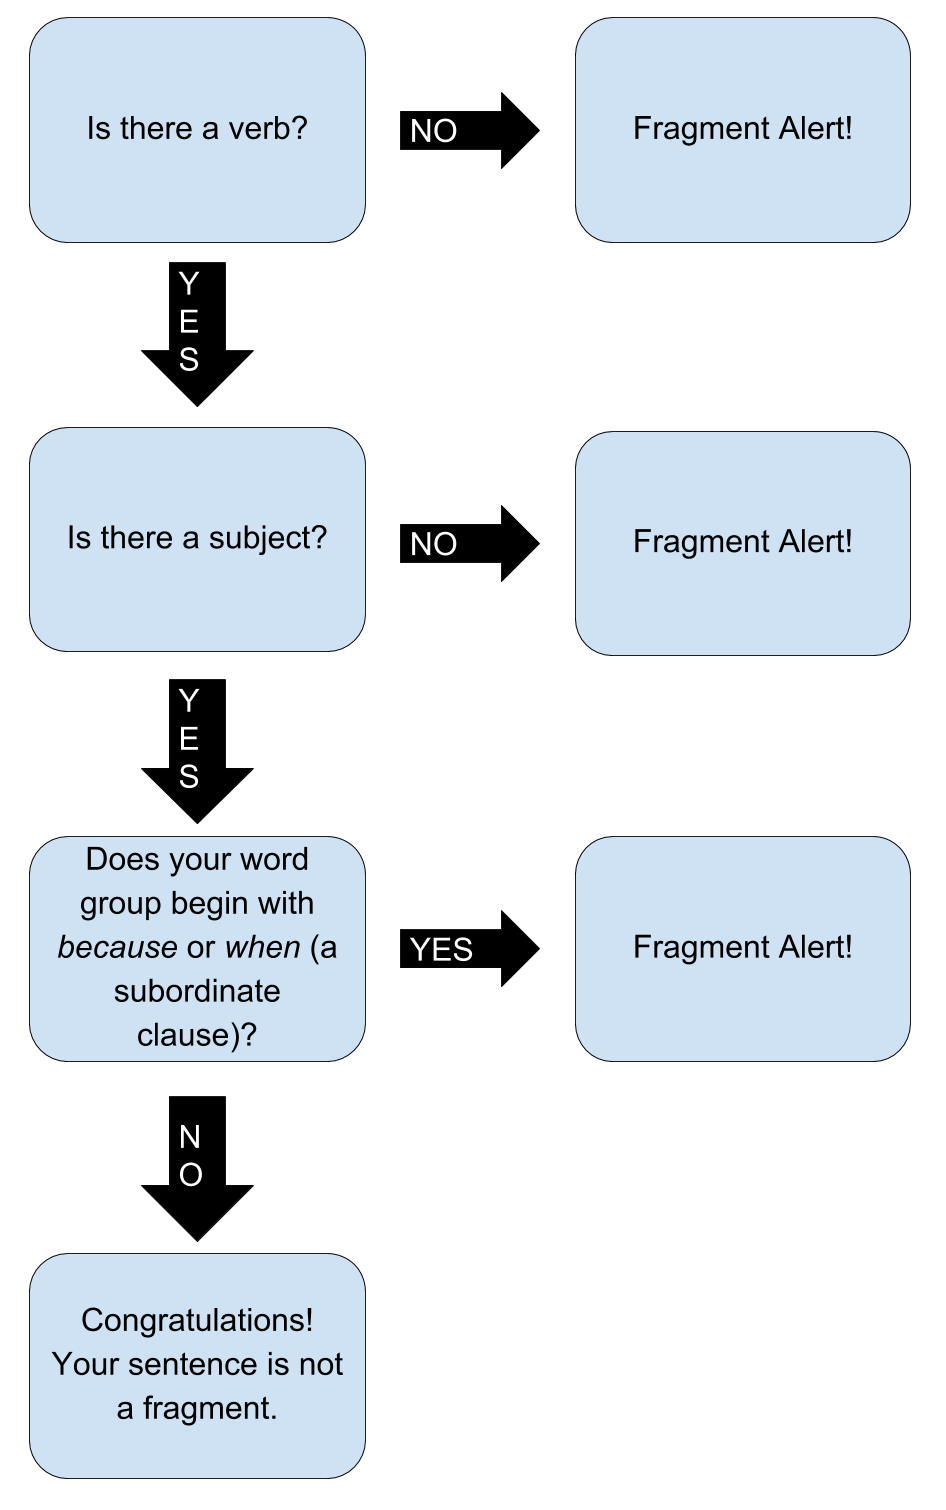 Is there a verb? If no, fragment alert! If yes, Is there a subject? If no, fragment alert! If yes, Does your word group begin with because or when (a subordinate clause)?  If yes, fragment alert! If no, Congratulations! Your sentence is not a fragment.